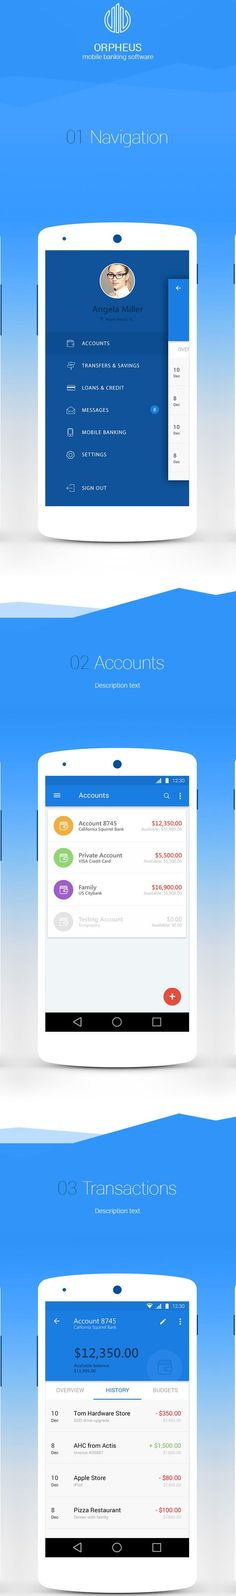 Mobile Banking Make some easy money with this FREE web app --> bitcoinfaucetbona. <-- Get Rich! Web Design, App Ui Design, User Interface Design, Mobile Ui Design, Mobile Application Design, Material Design, Mobiles Webdesign, Android Design, App Design Inspiration